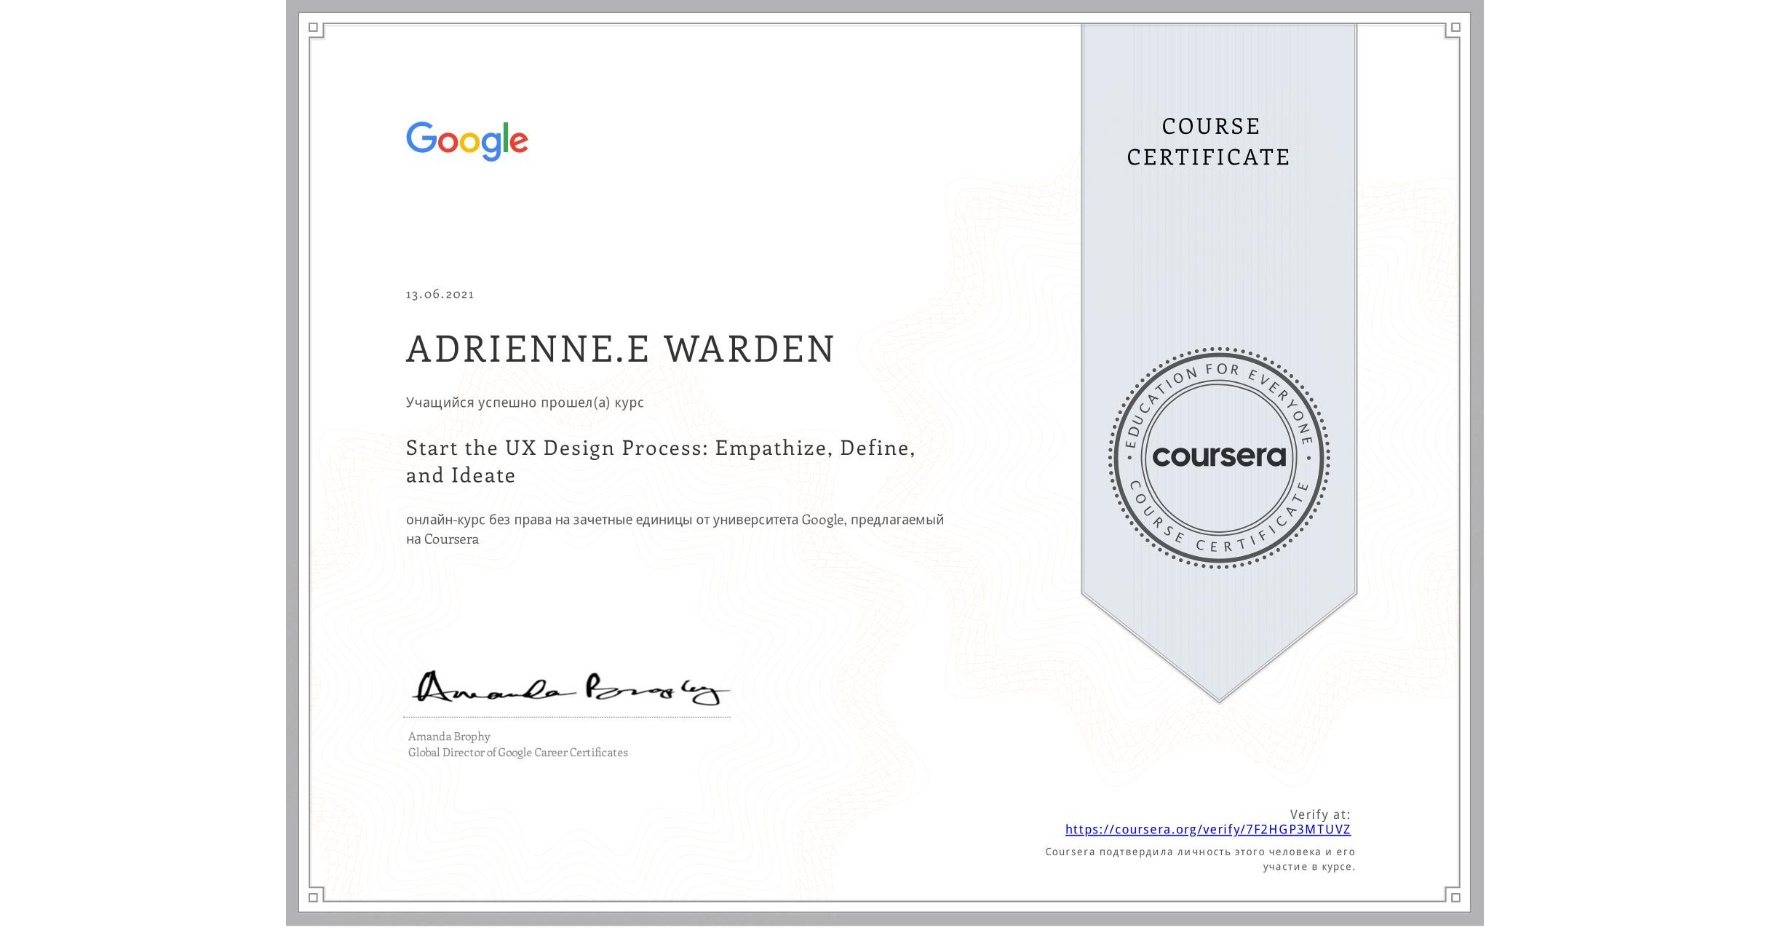 View certificate for ADRIENNE.E WARDEN, Start the UX Design Process: Empathize, Define, and Ideate, an online non-credit course authorized by Google and offered through Coursera